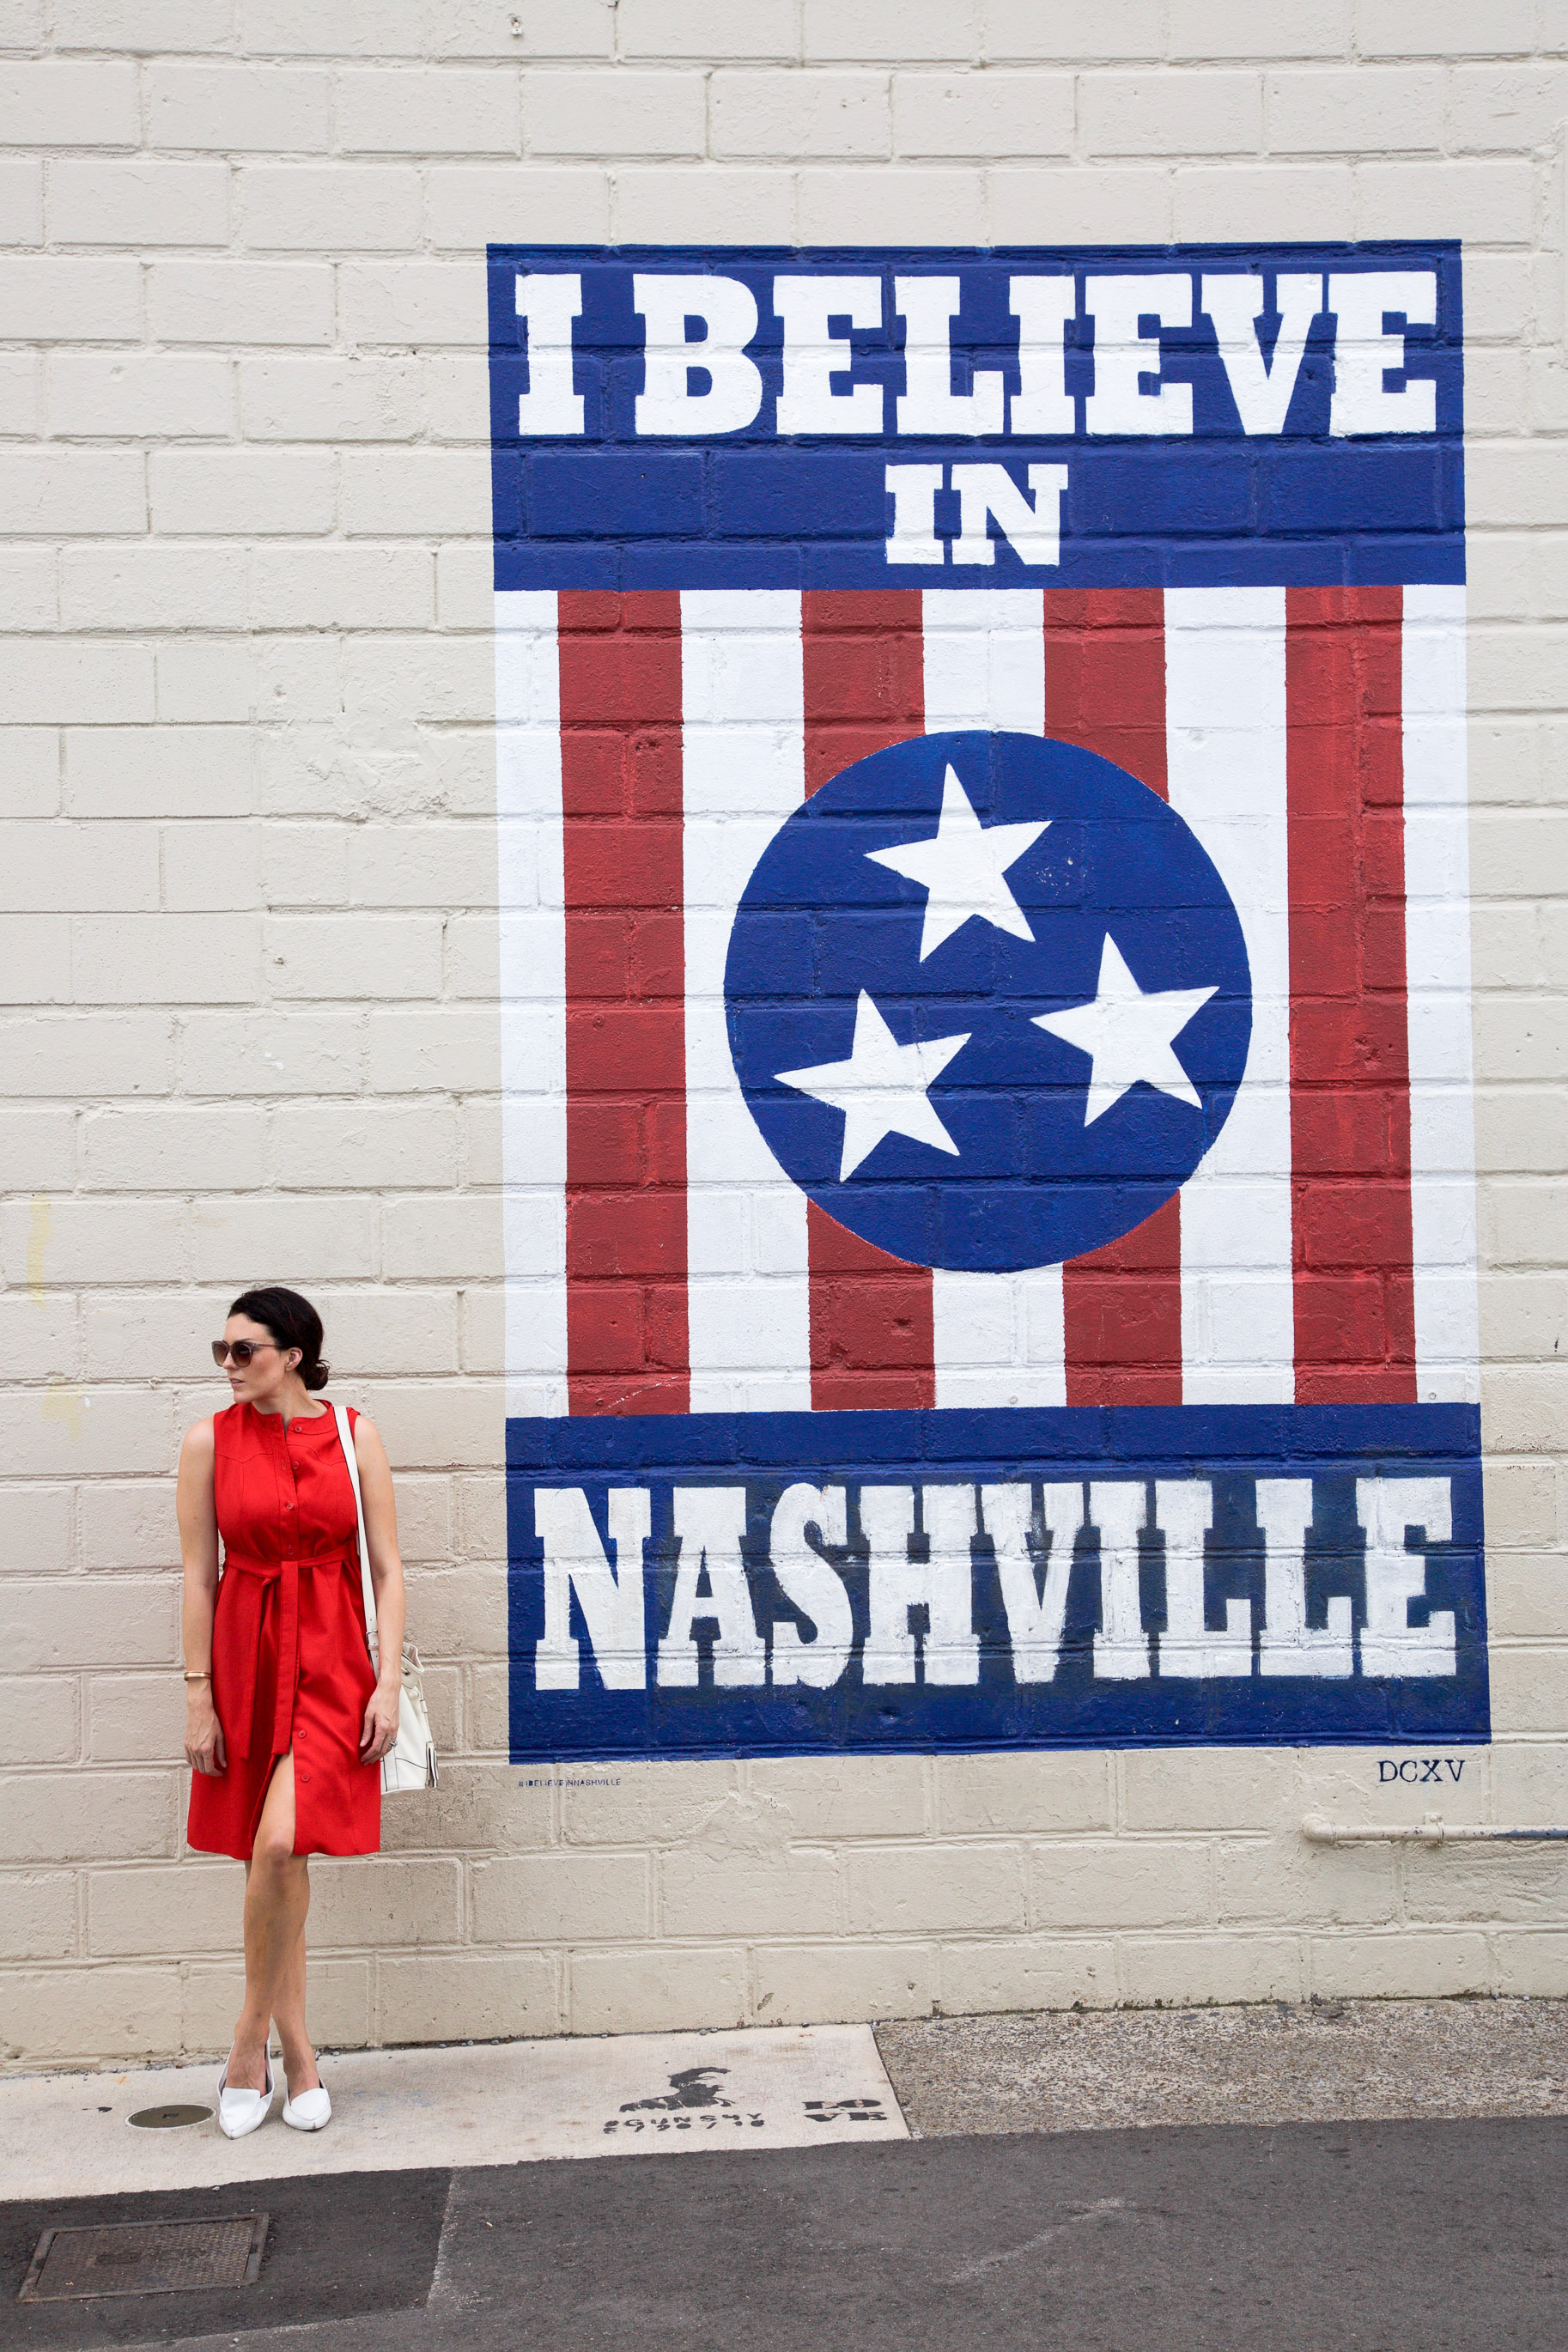 I-believe-in-Nashville.jpg